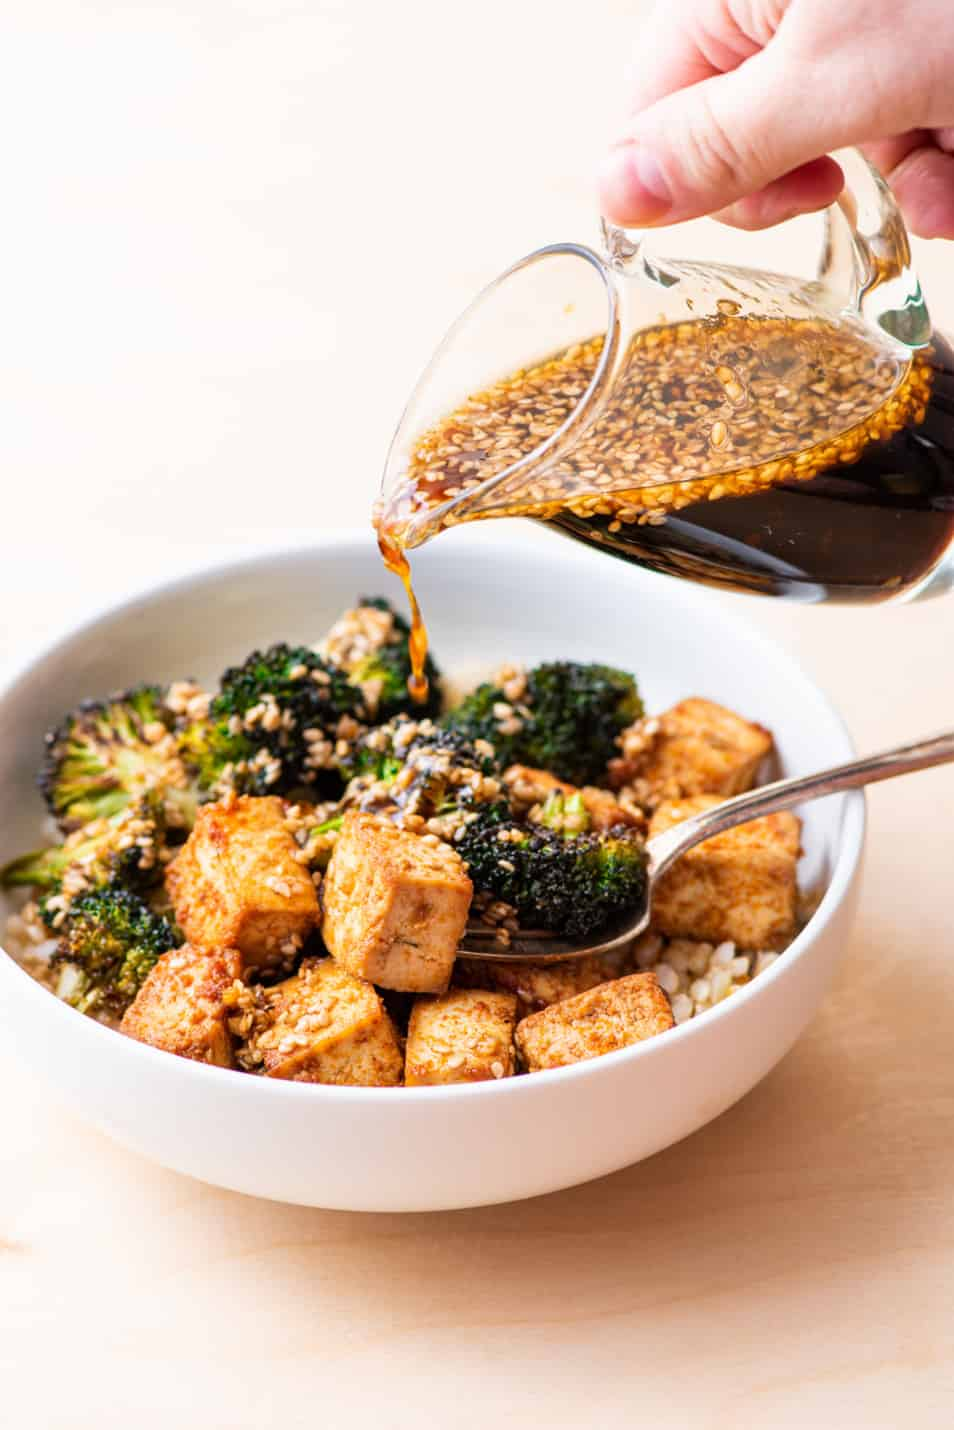 Sesame dressing in a glass pourer, being poured on a tofu grain bowl